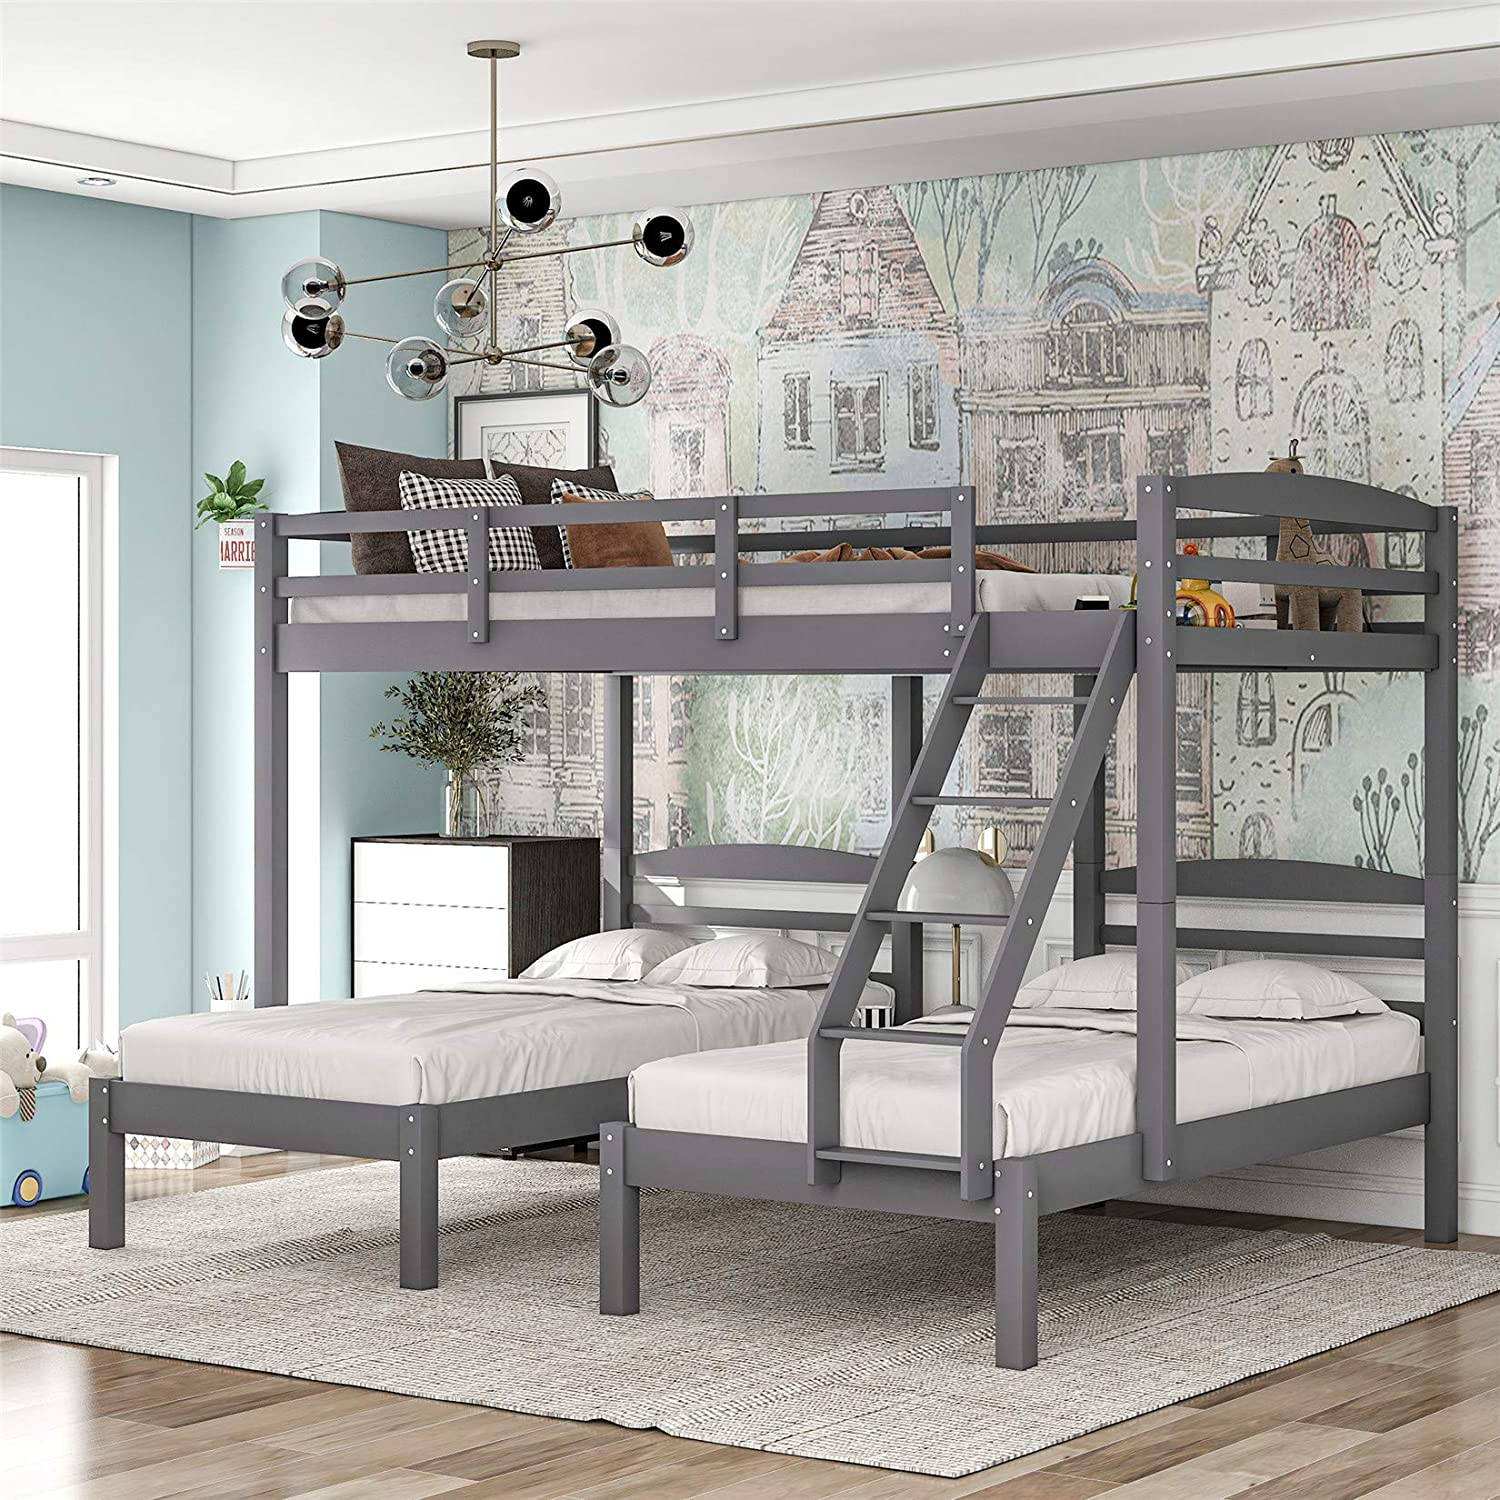 Buy Full Over Twin And Twin Bunk Bed Wooden Triple Bunk Bed With Storage For Kids Girls Boys Space Saving Bunk Beds For 3 Gray Hellip Online In Vietnam B08wx5xf5z